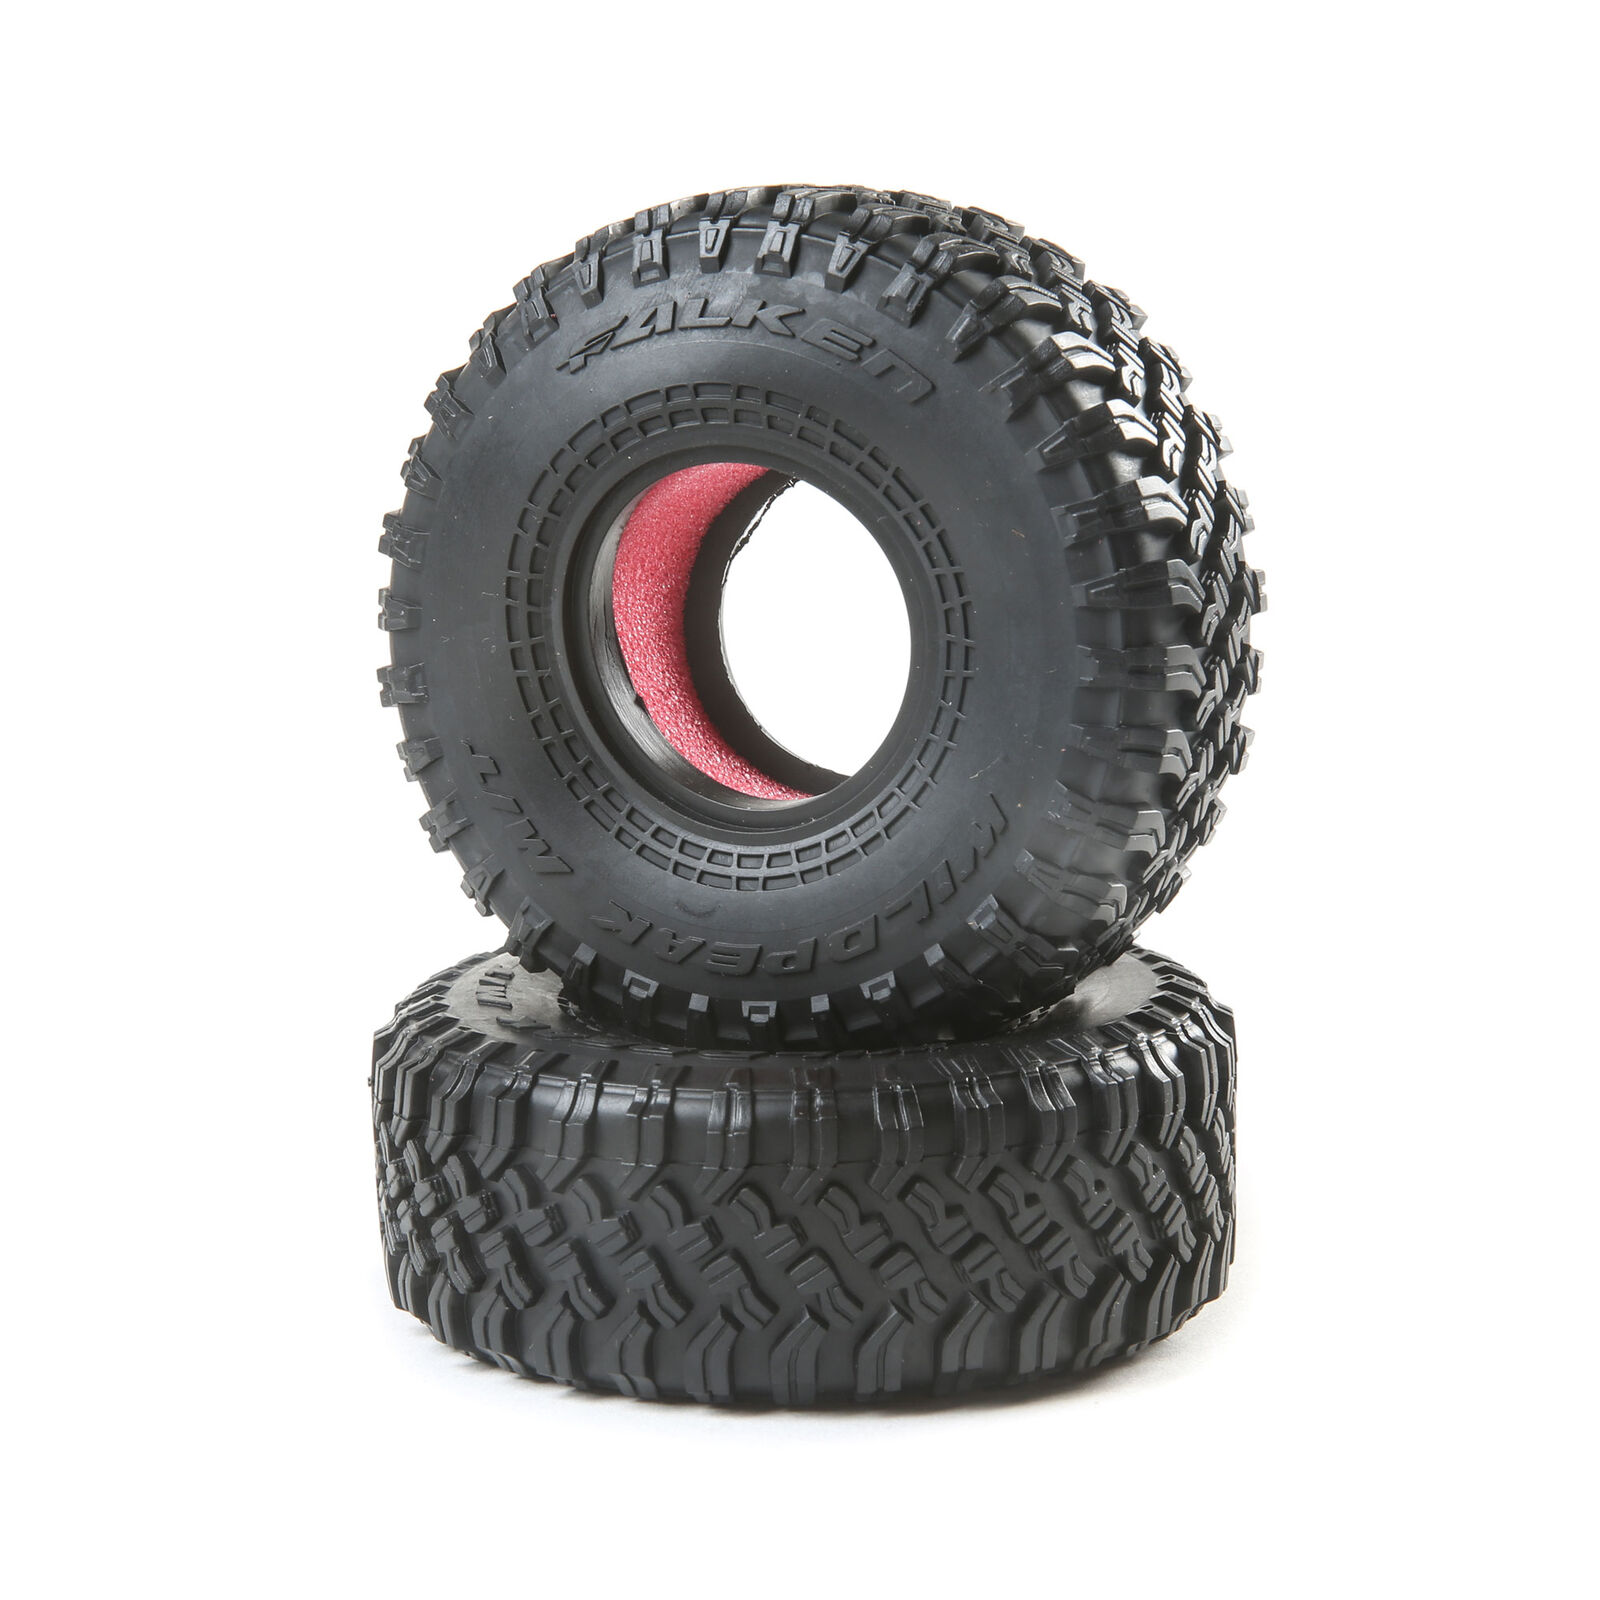 1.55 Falken Wildpeak MT Tires (2): Barrage 2.0